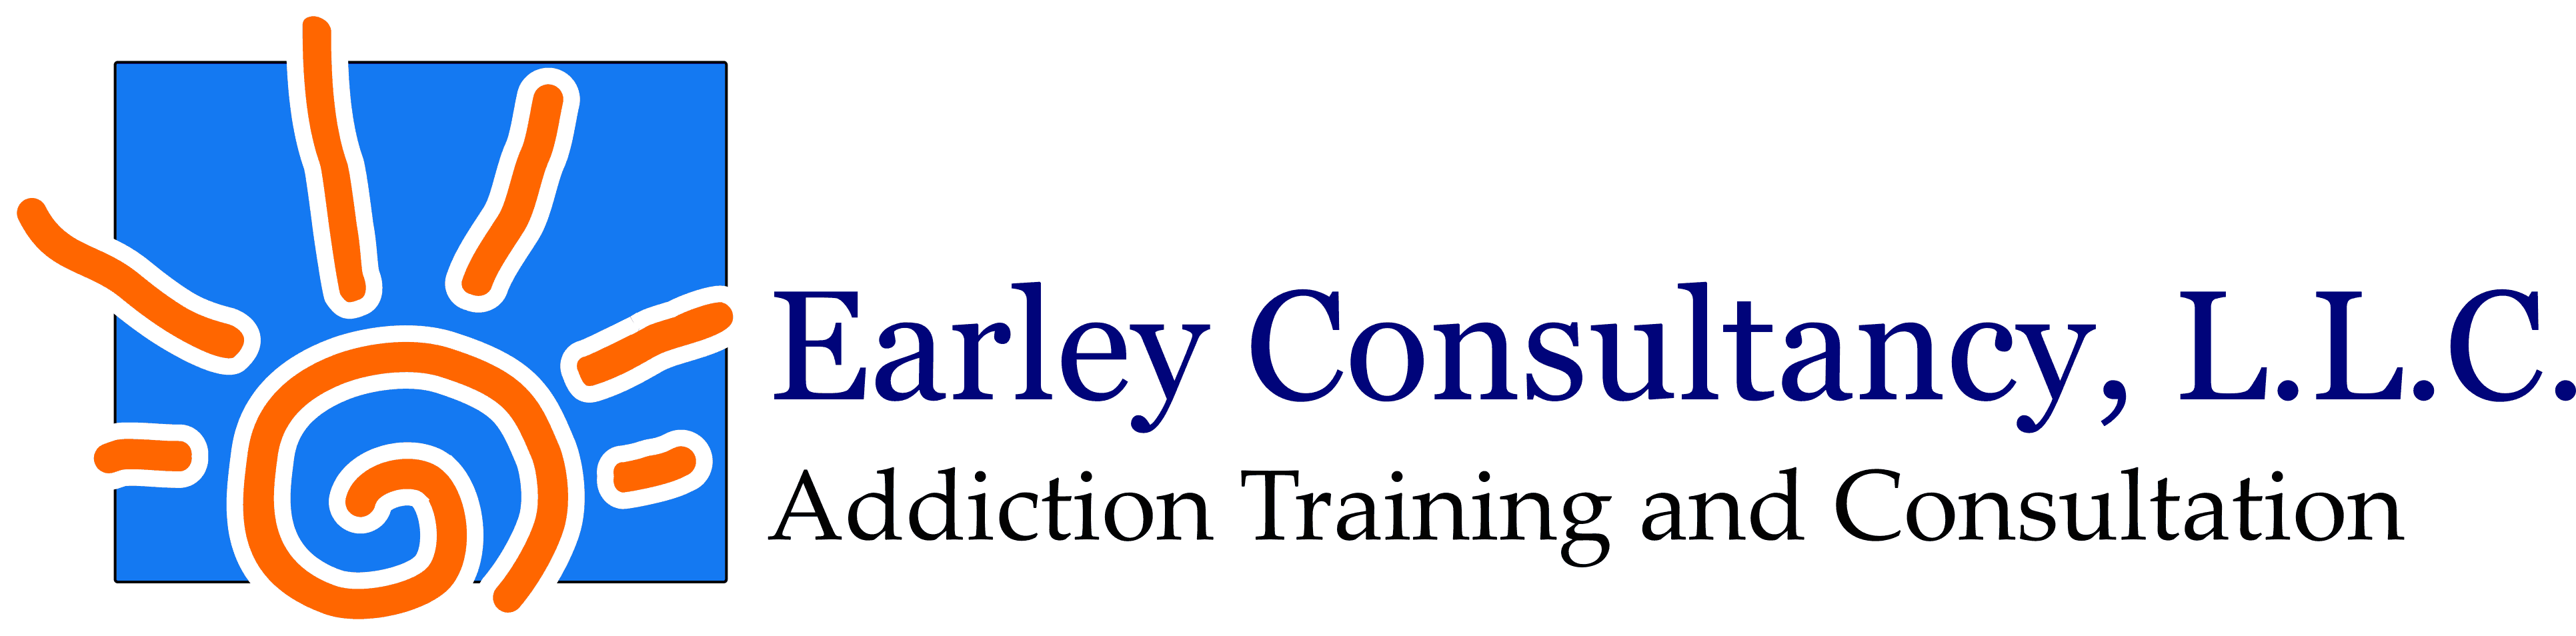 Earley Consultancy Logo